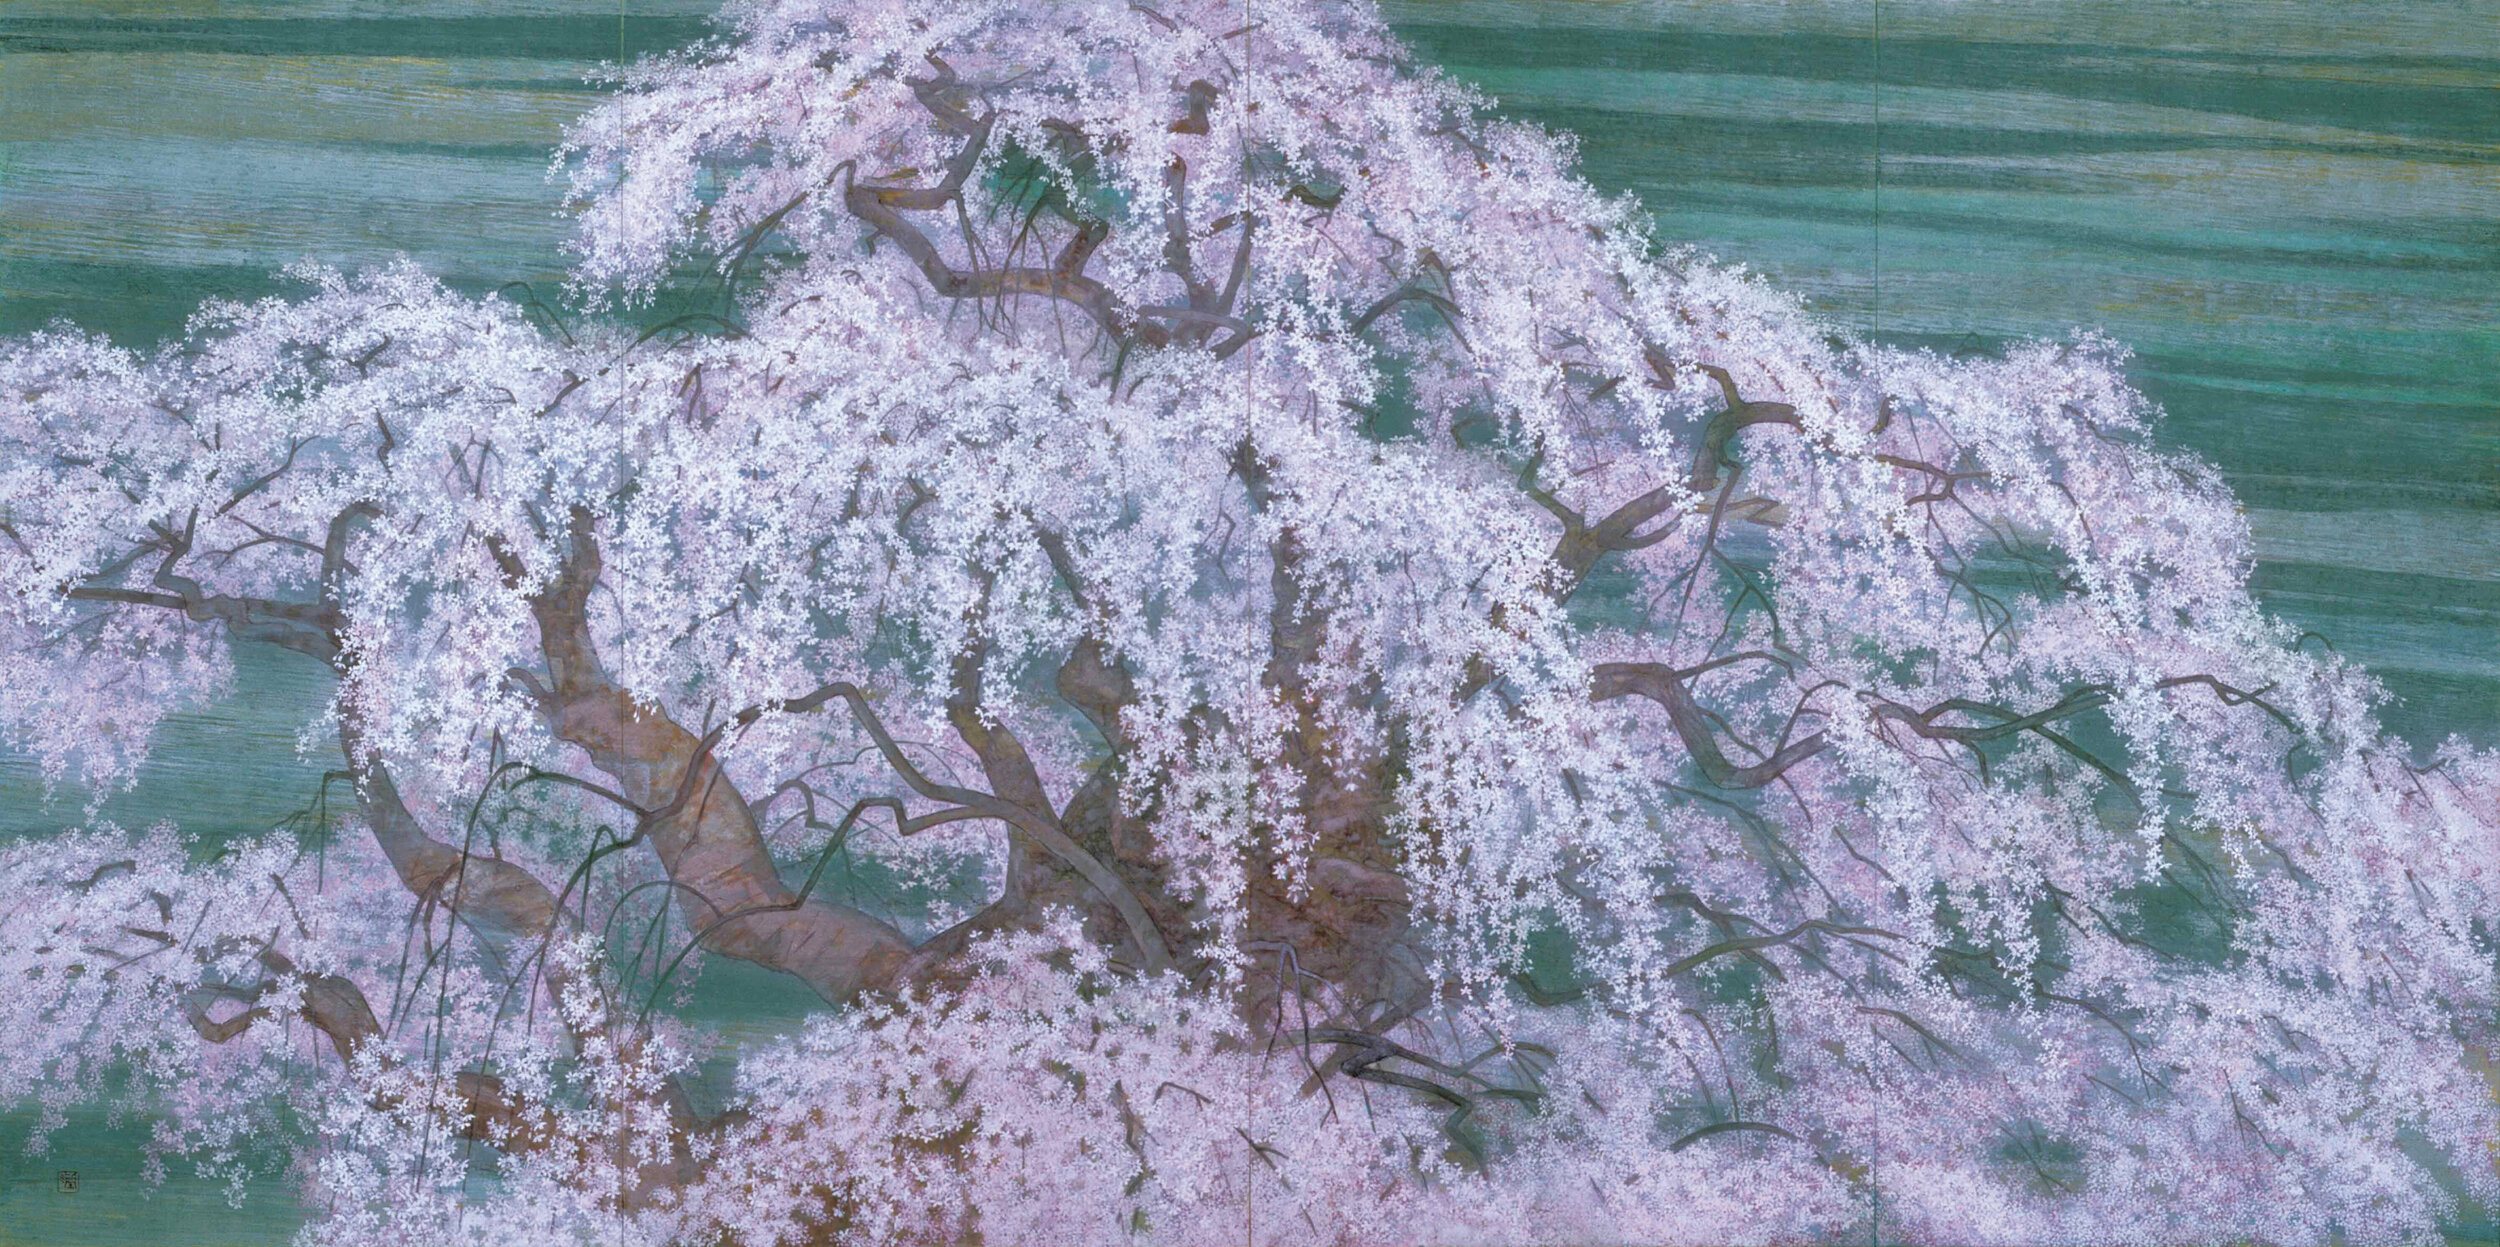 Hayashi Jun'ichi 'A Weeping Cherry Tree' 2002